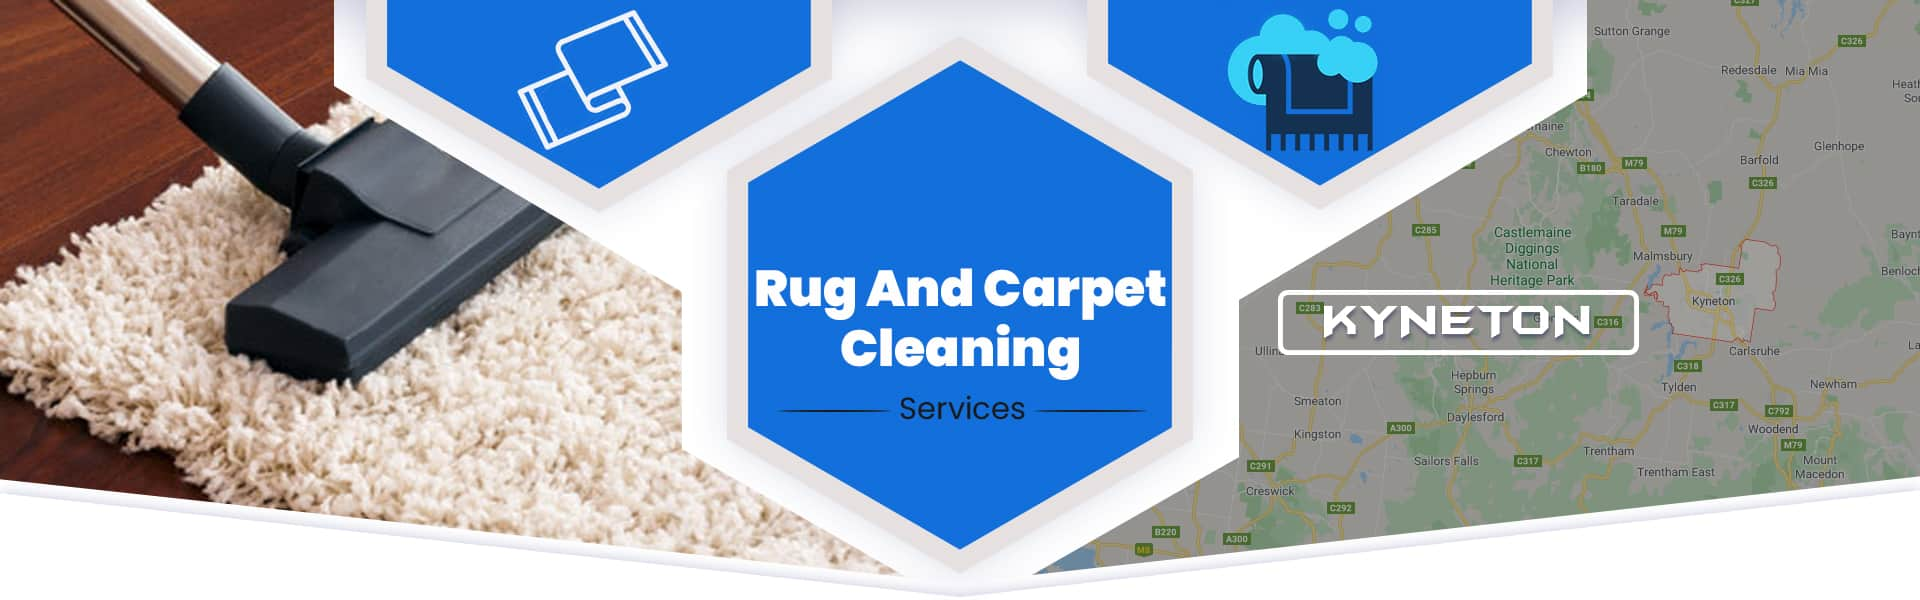 Rug and Carpet Cleaning Kyneton